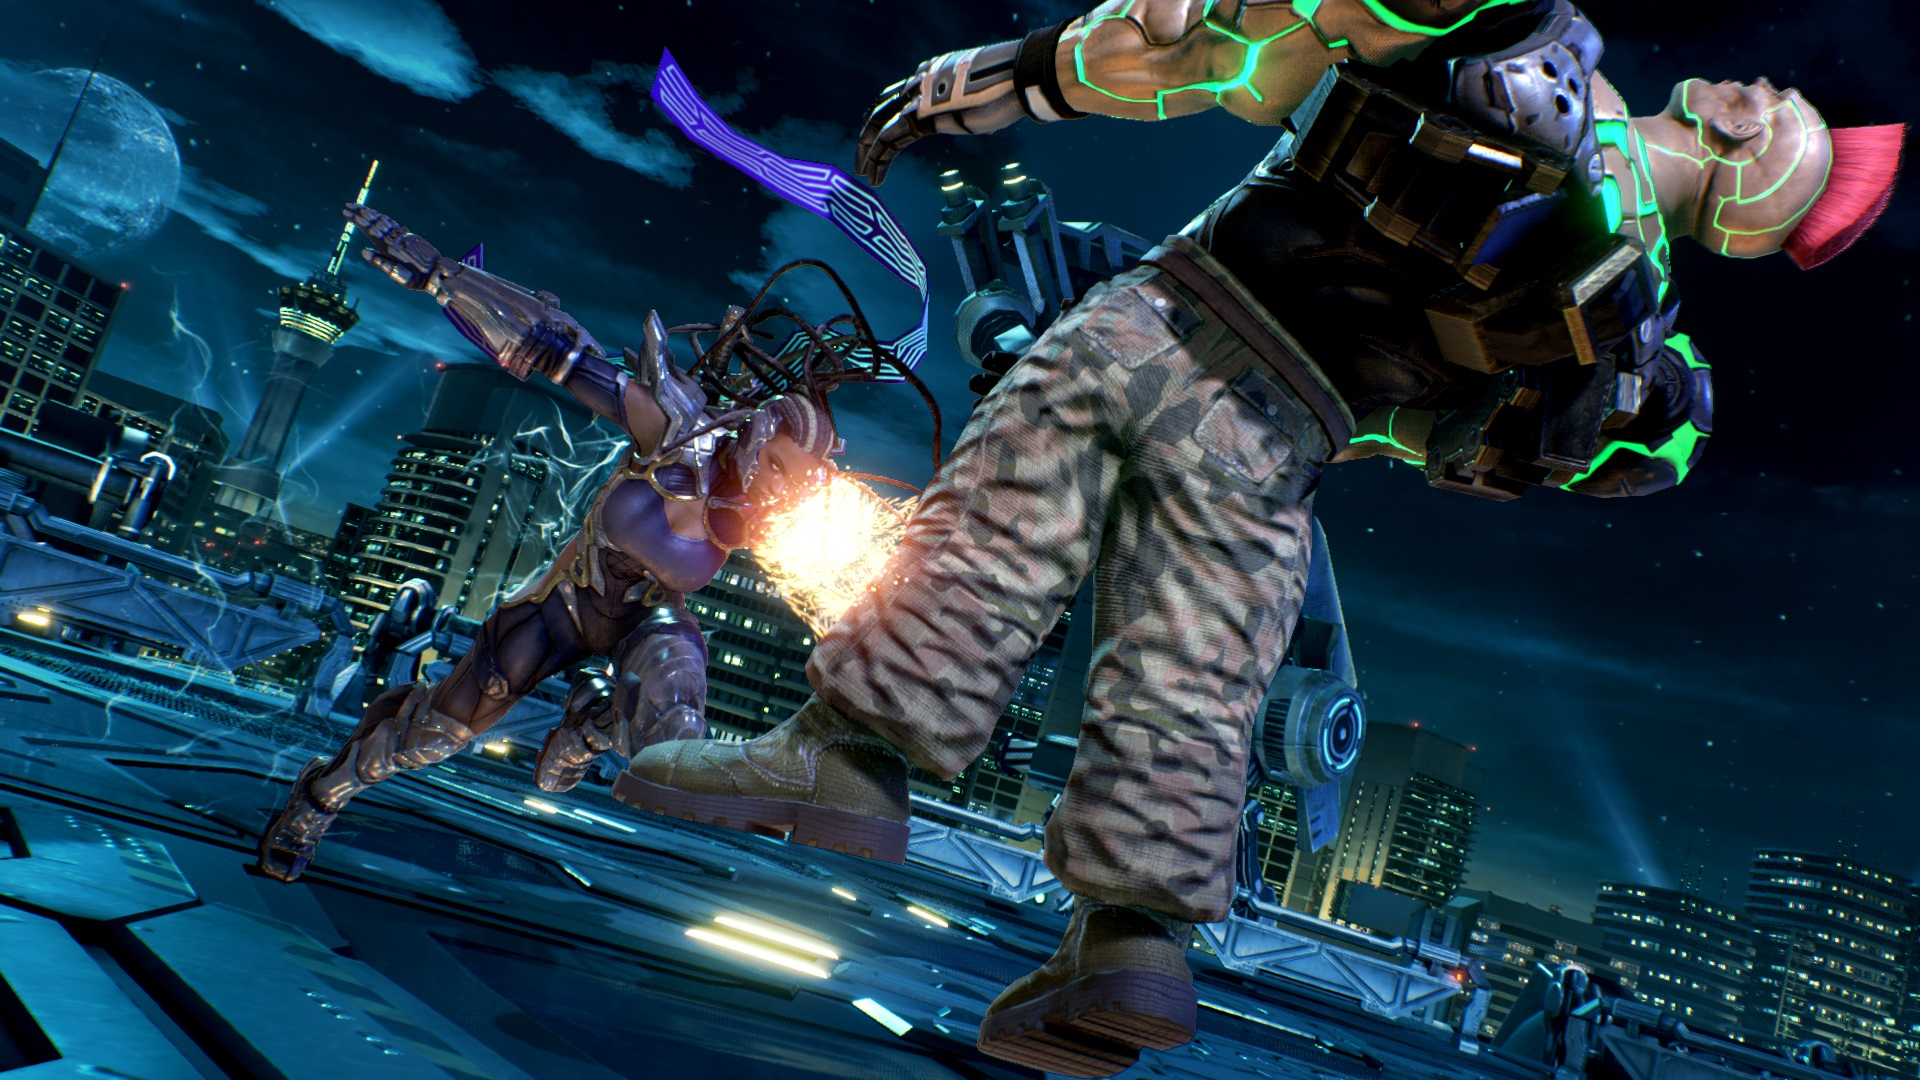 Tekken 7 adds New Character Master Raven and Bob to the Roster  Capsule Computers